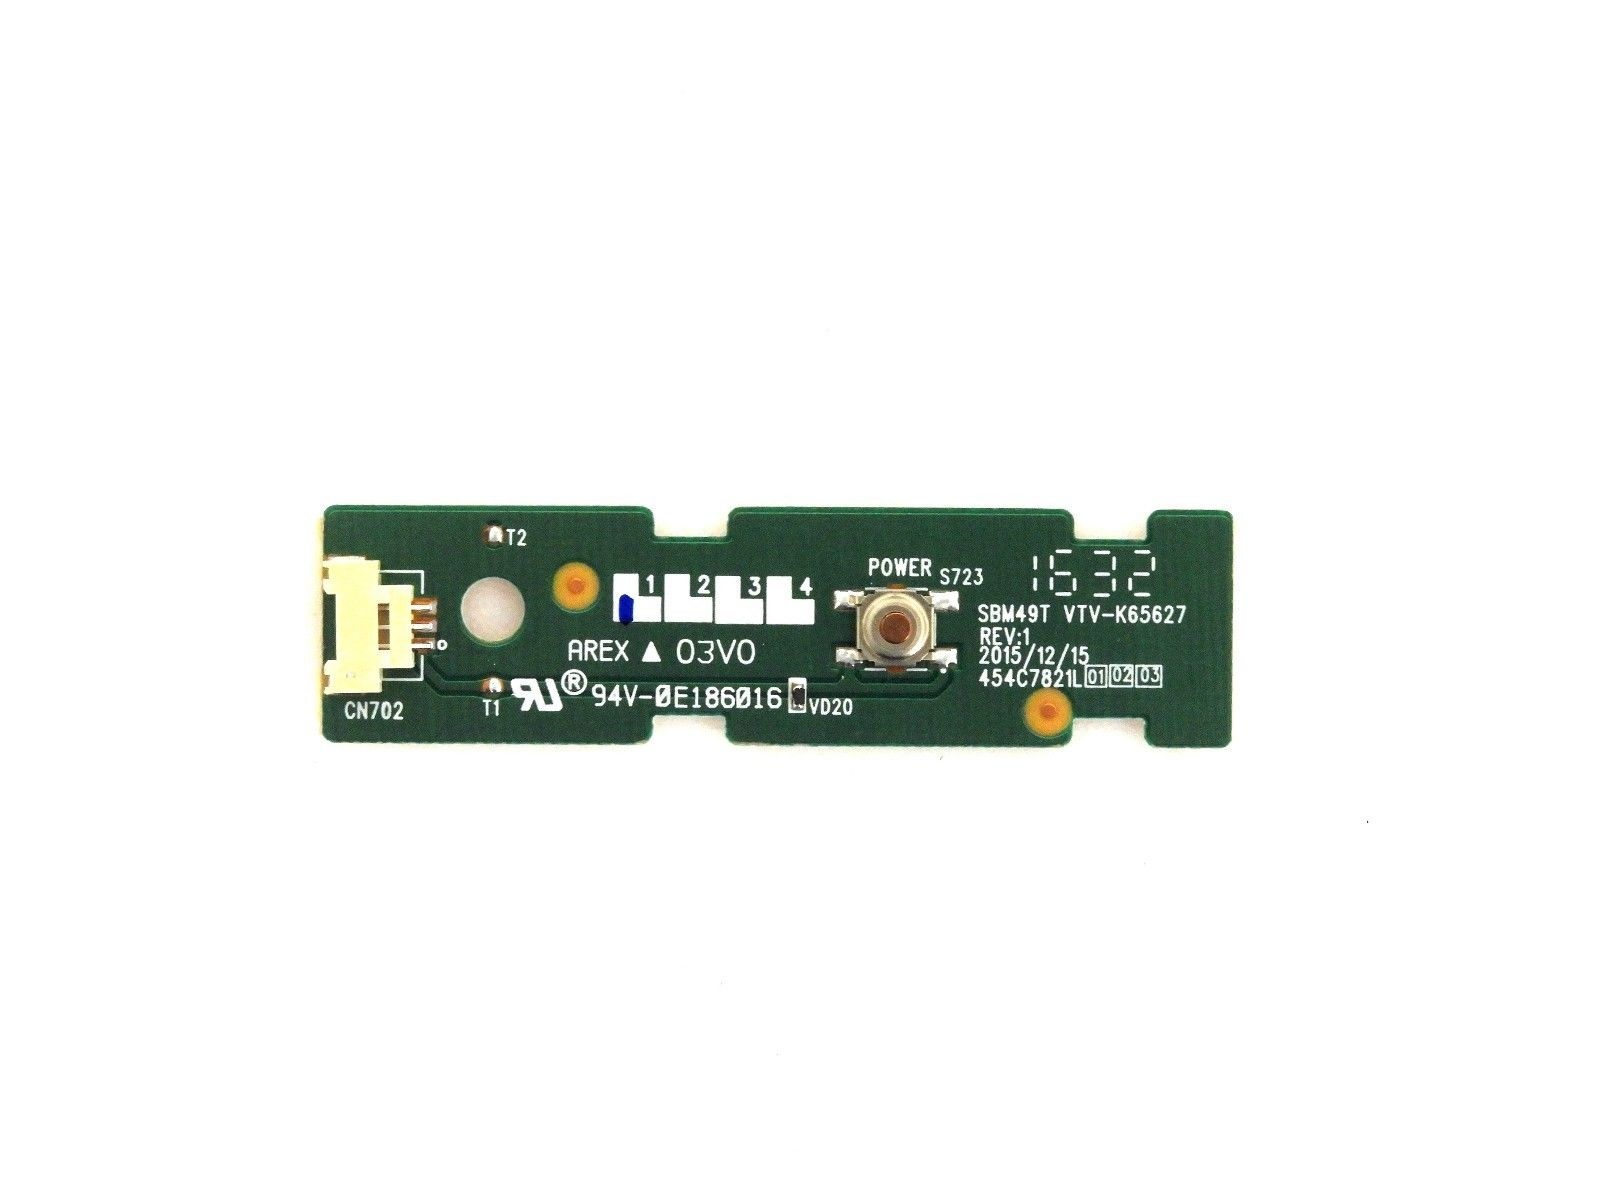 Toshiba 49L621U Power Button Board 454C7821L01